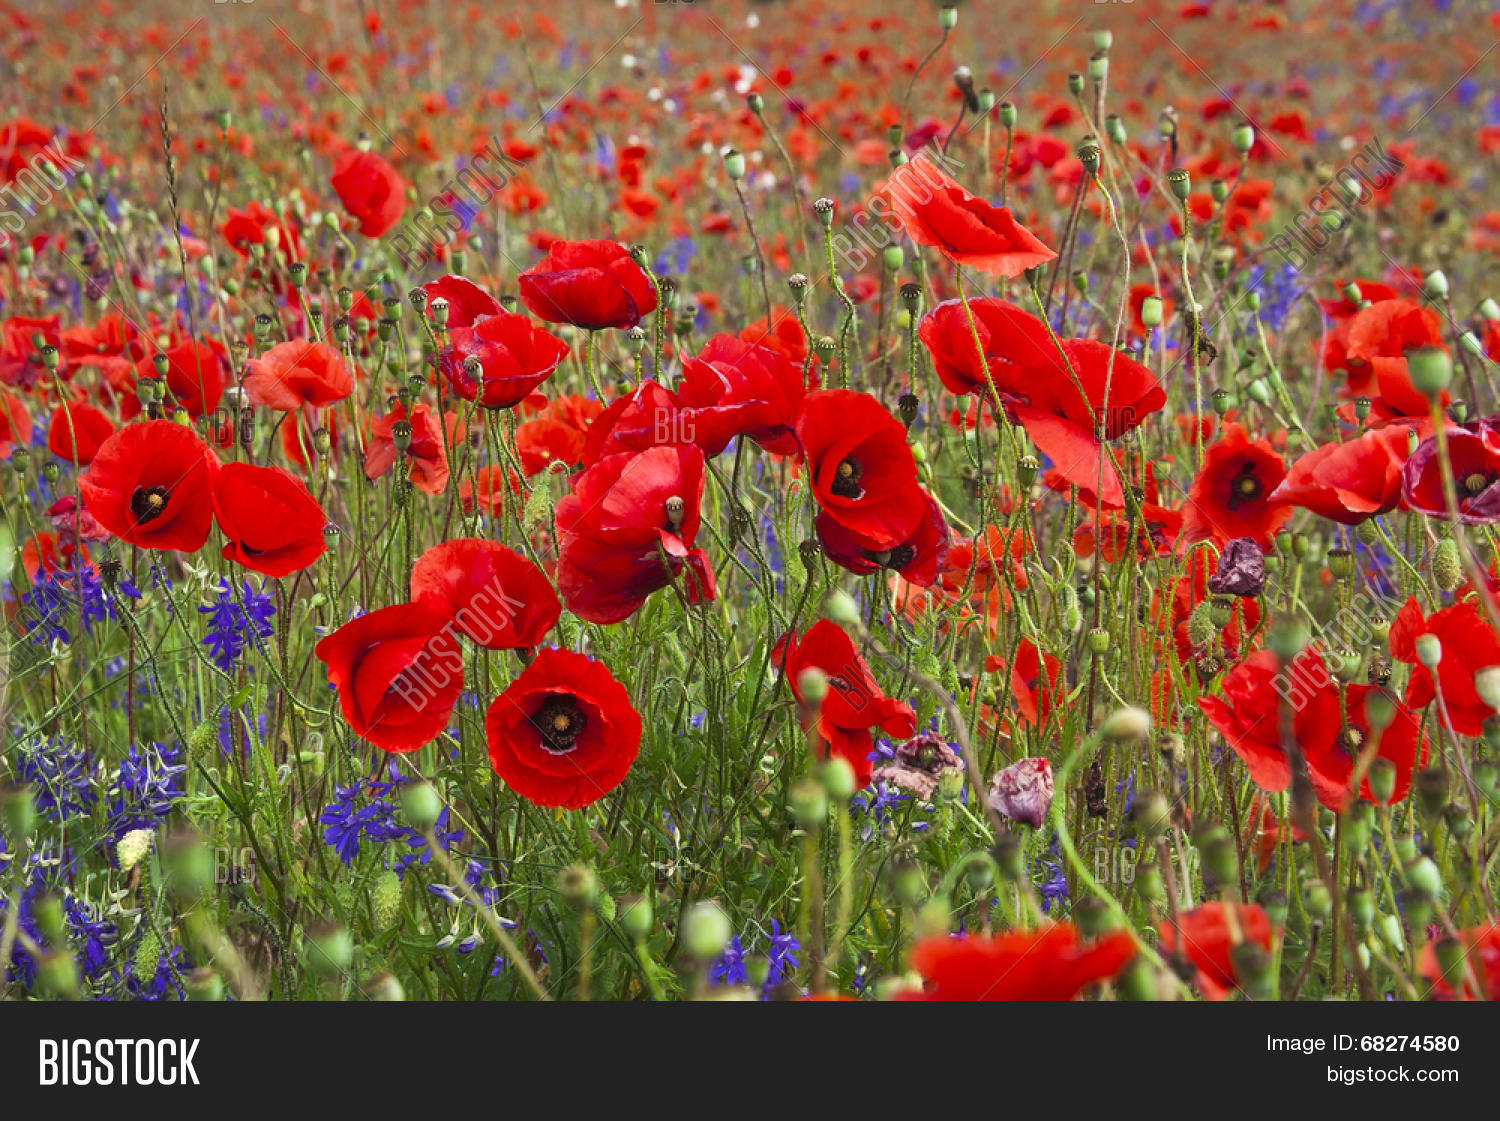 Field Bright Red Poppy Image Photo Free Trial Bigstock